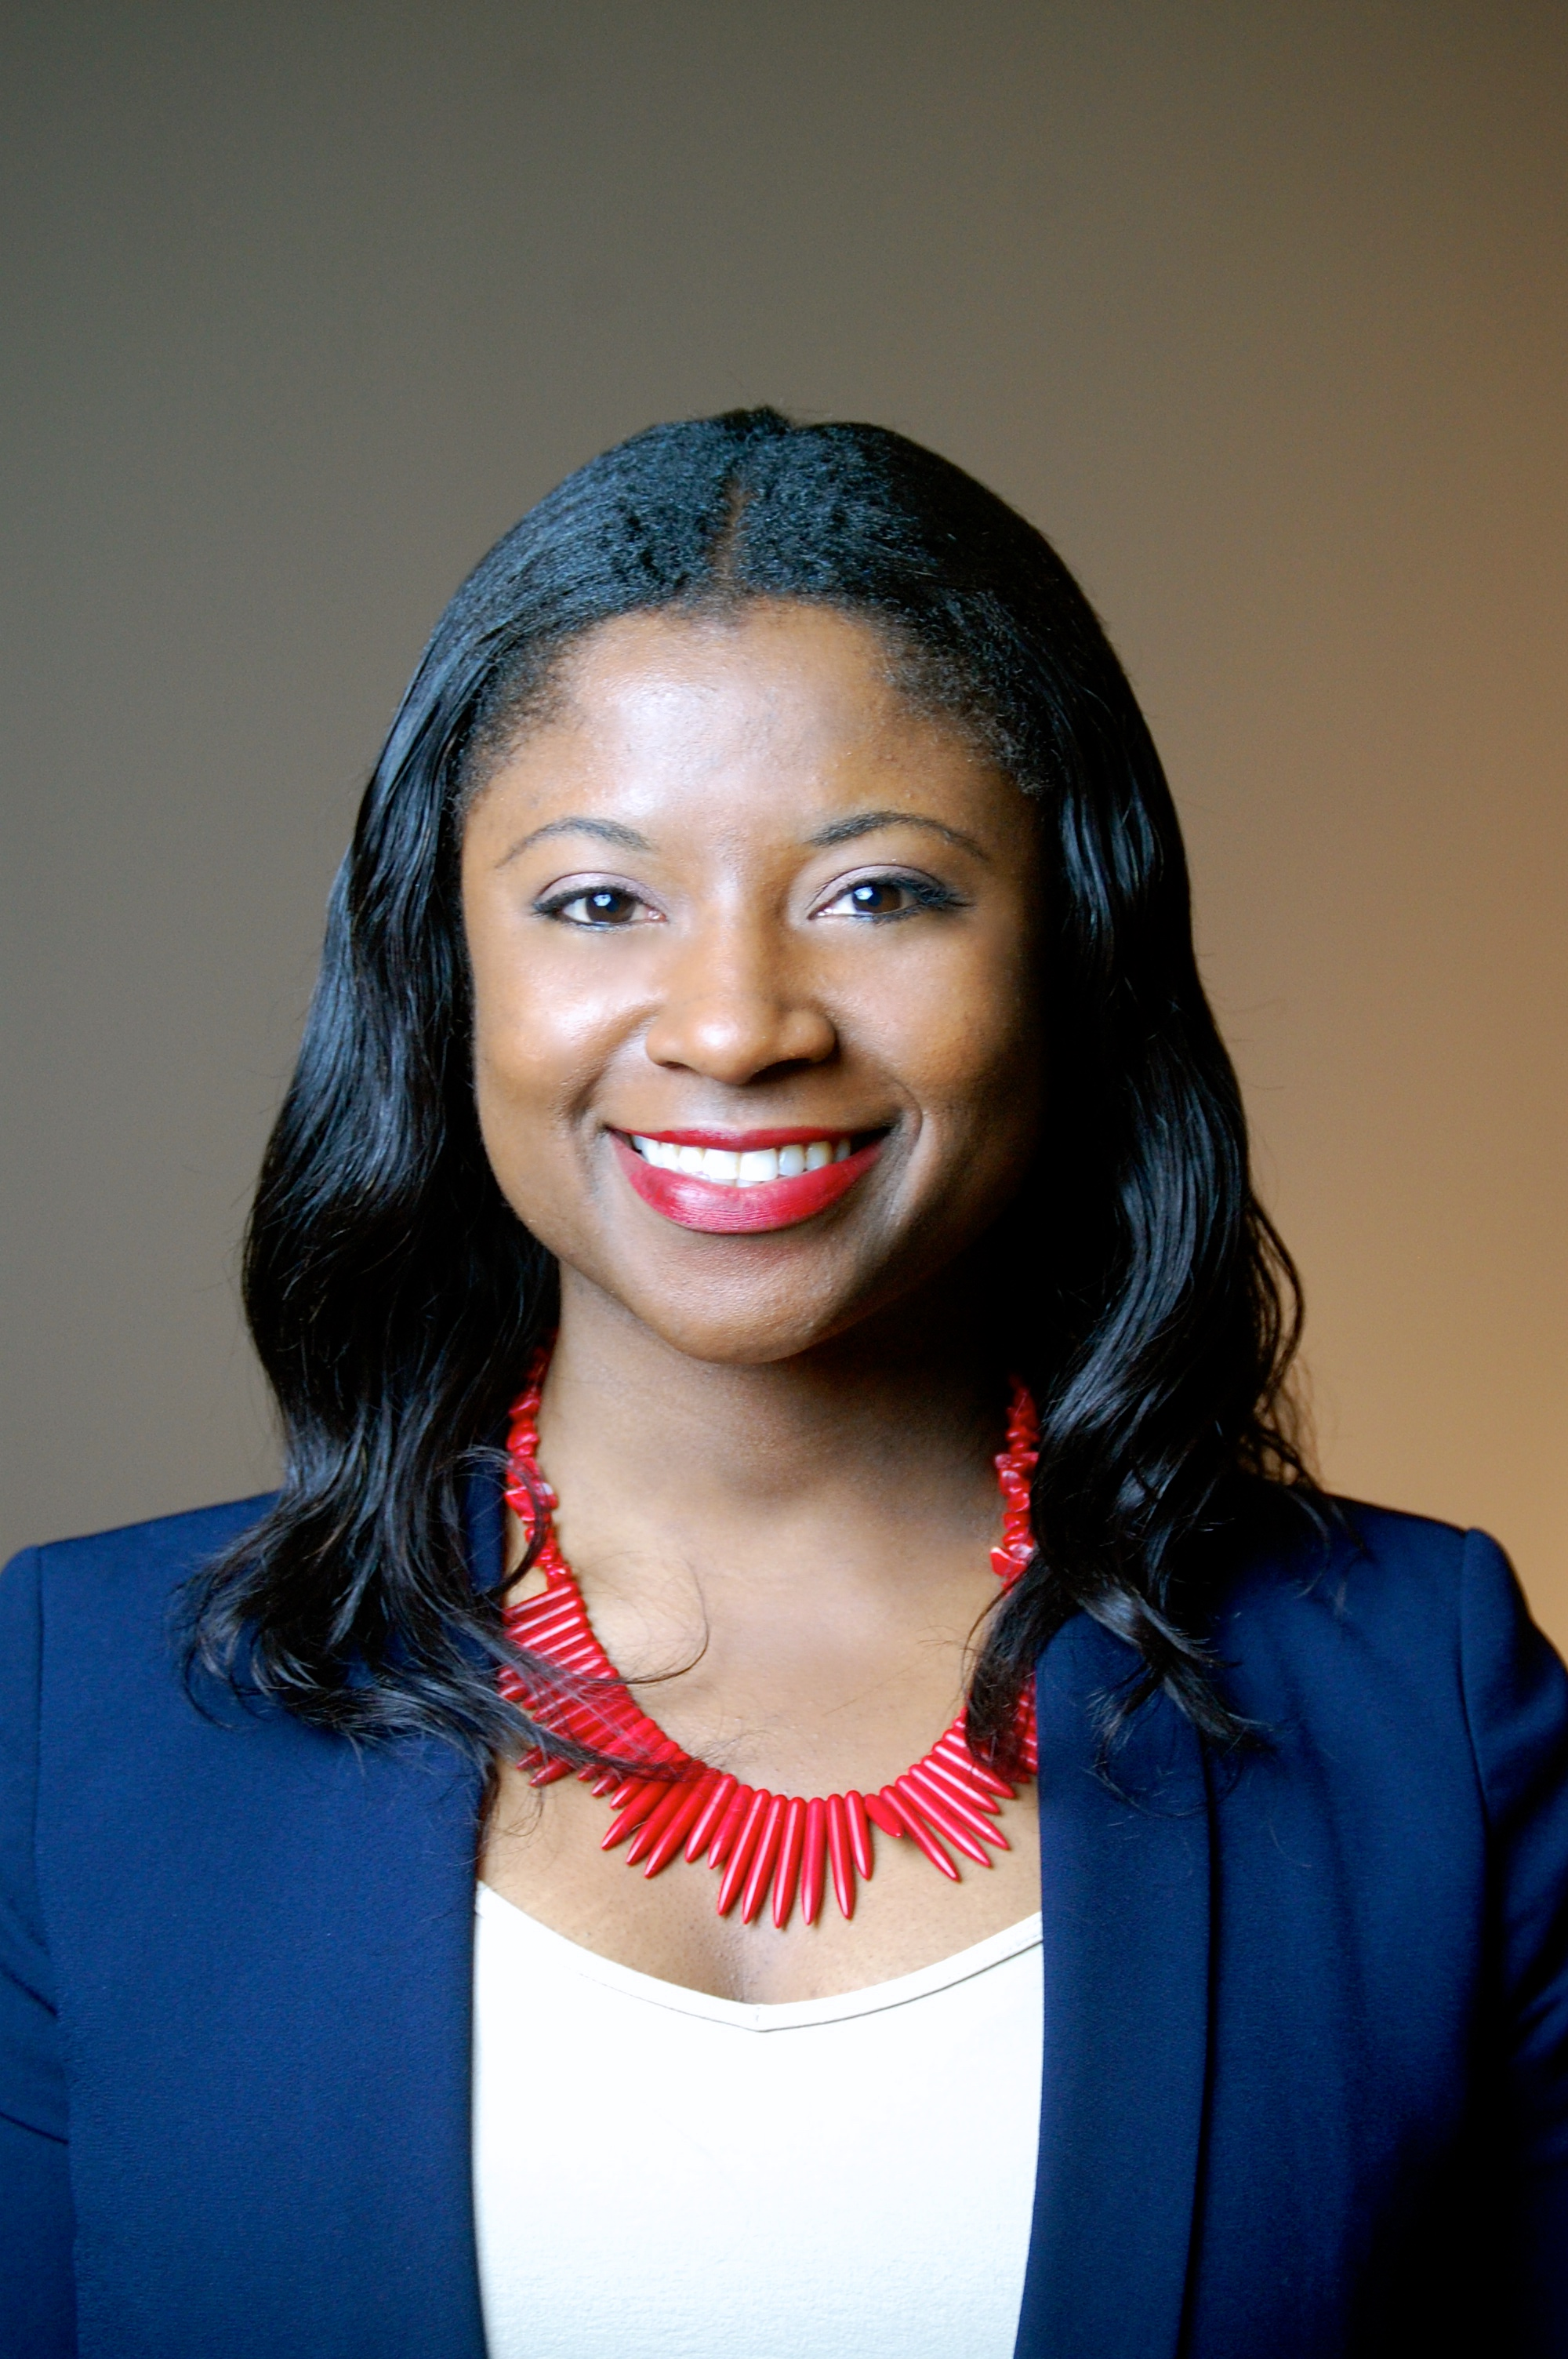 FIU Law Alumna Iris A. Elijah '11, becomes first African-American Attorney in history of the State University System of Florida's Board of Governors.